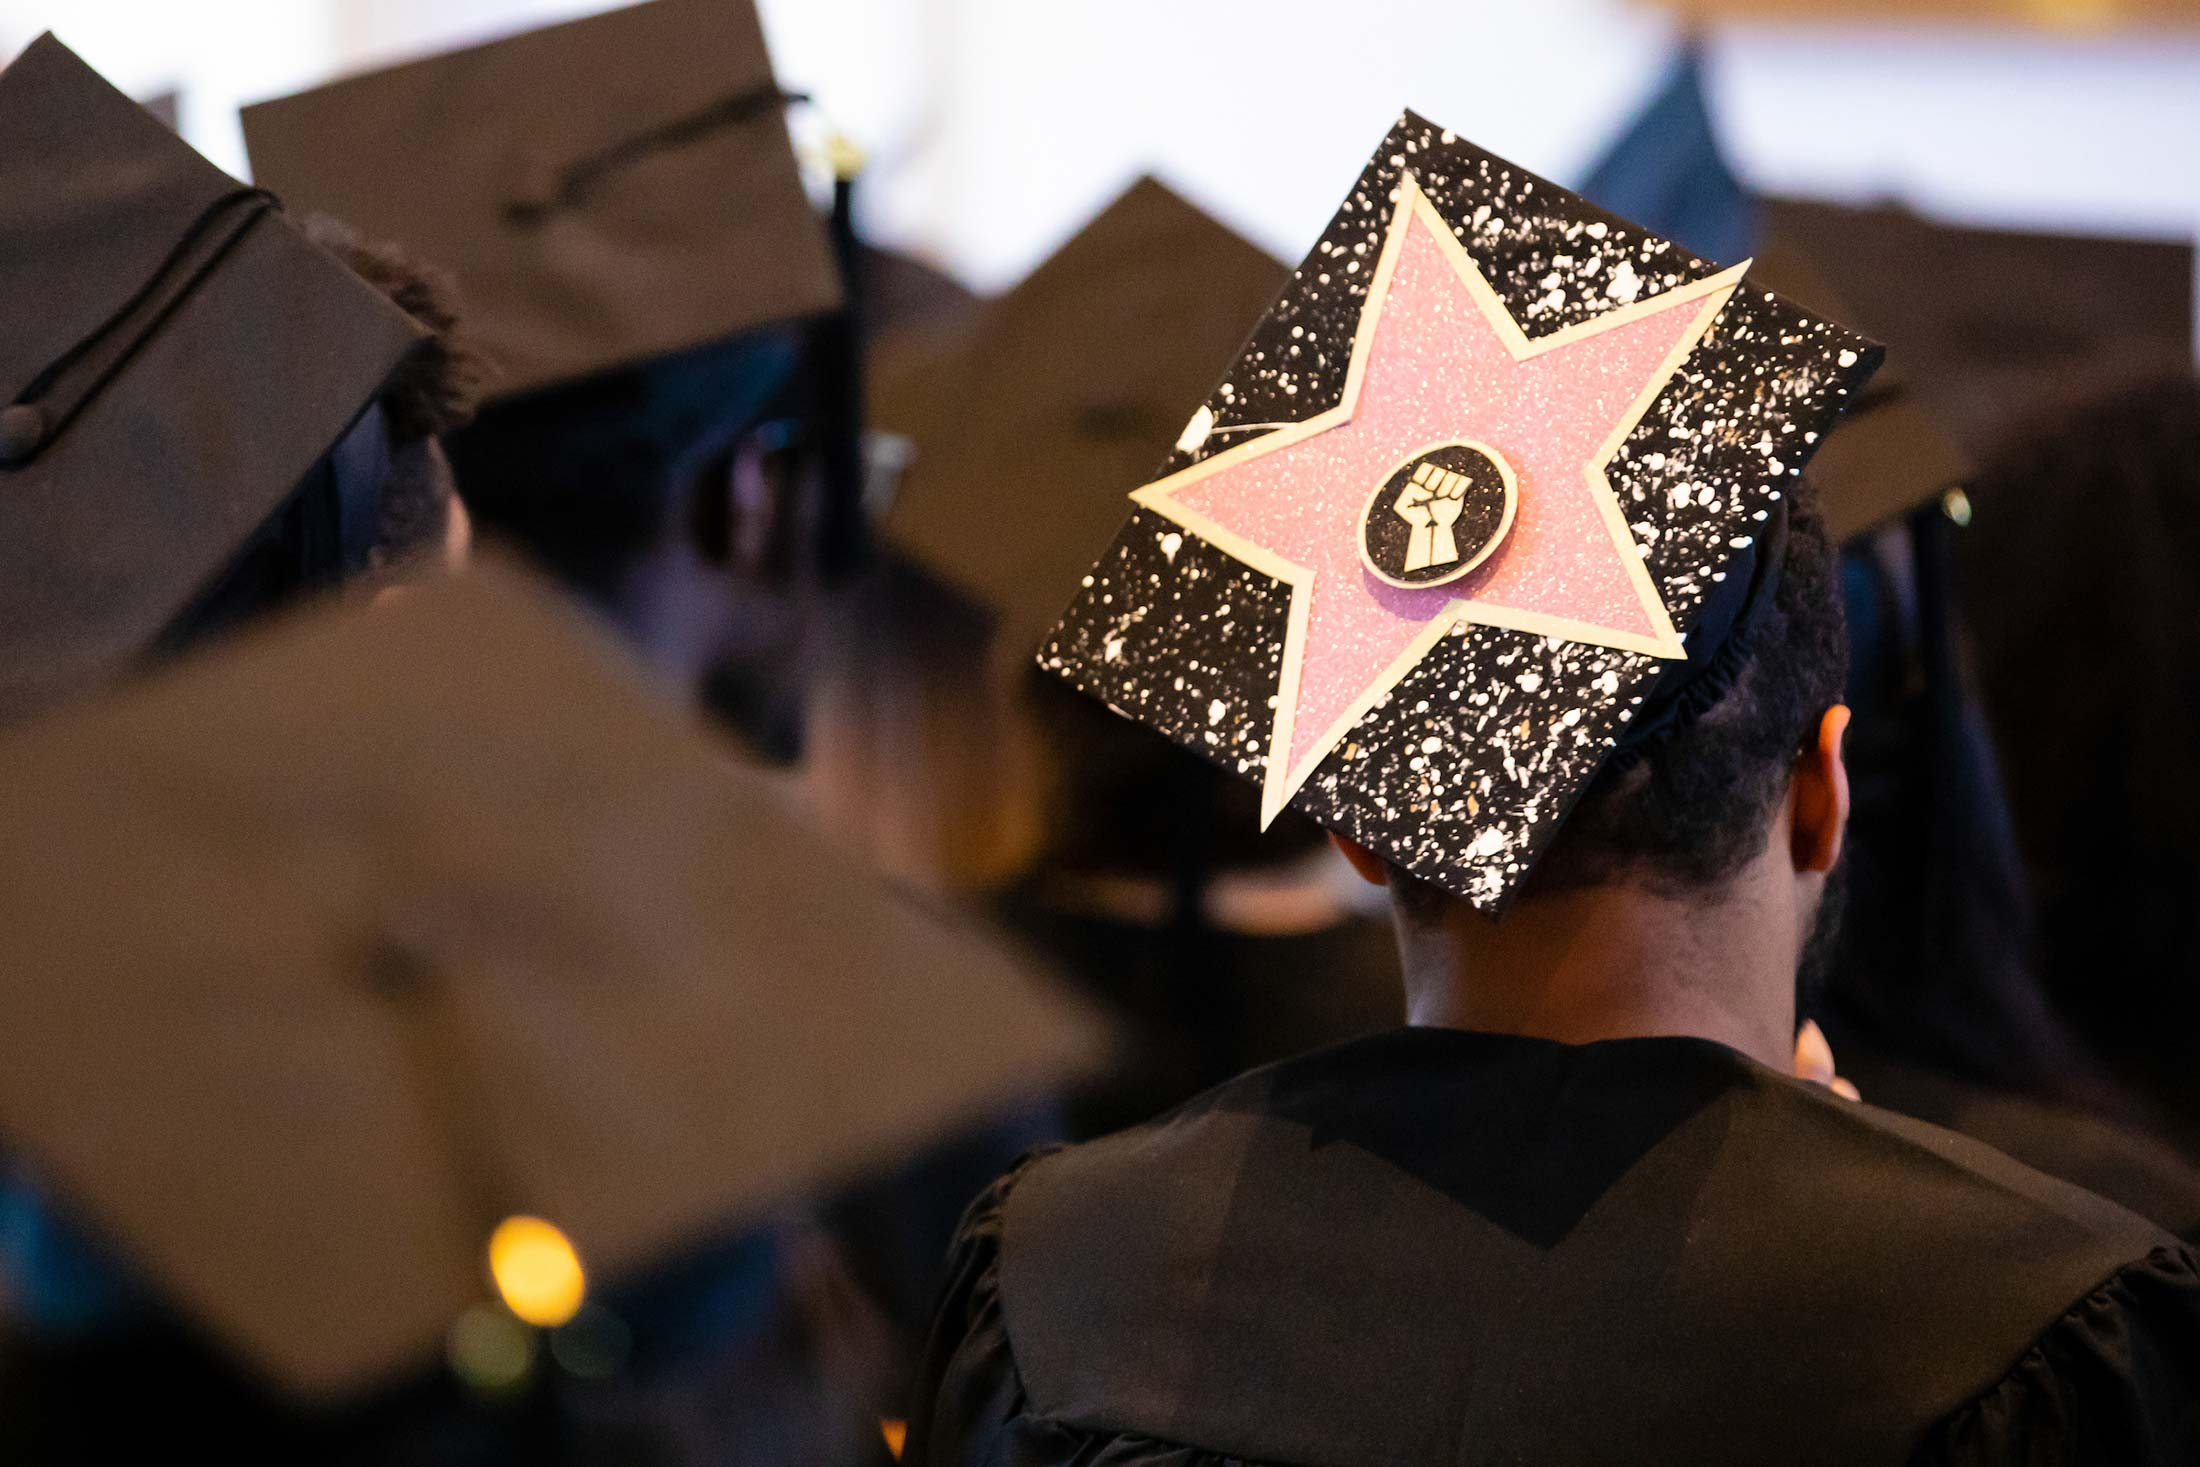 A close-up of a graduation cap decorated with a large pink star and a silhouette of a fisted hand